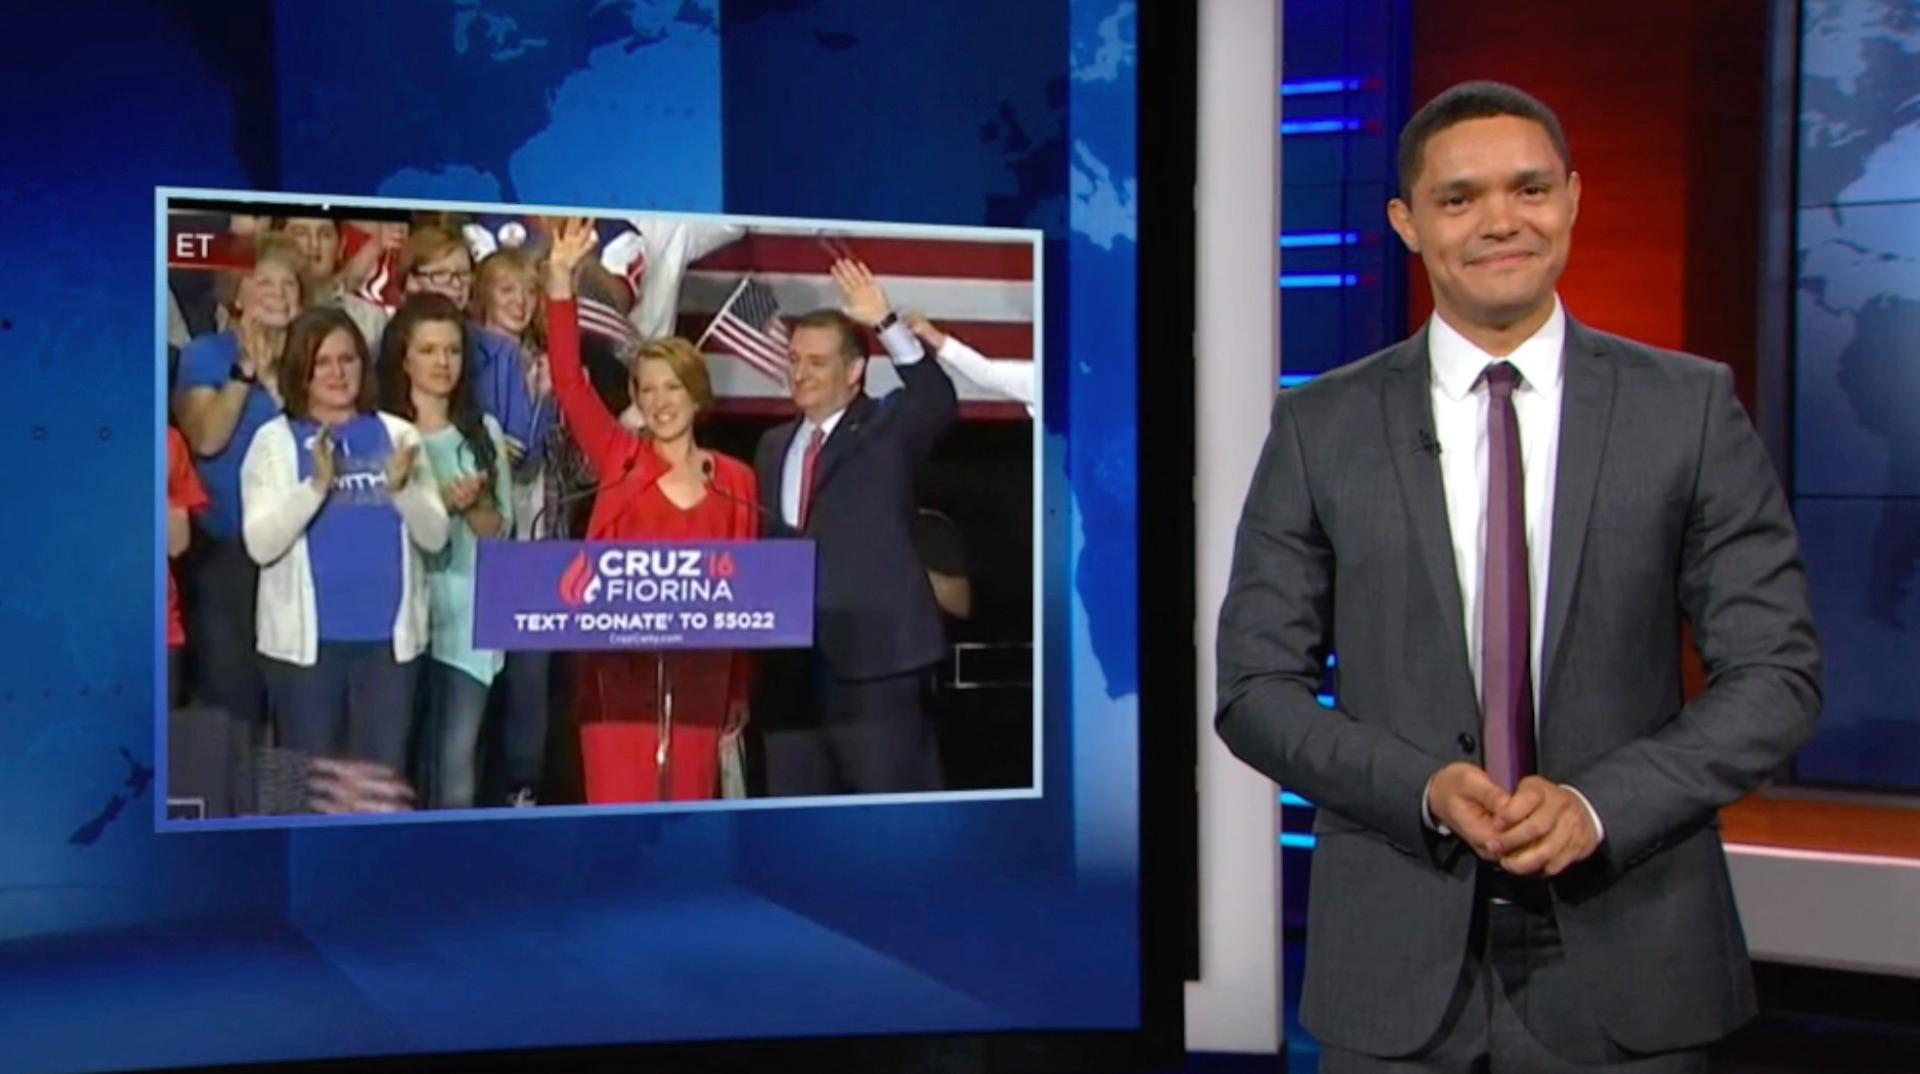 Late-night laughs: Carly Fiorina as vice president edition